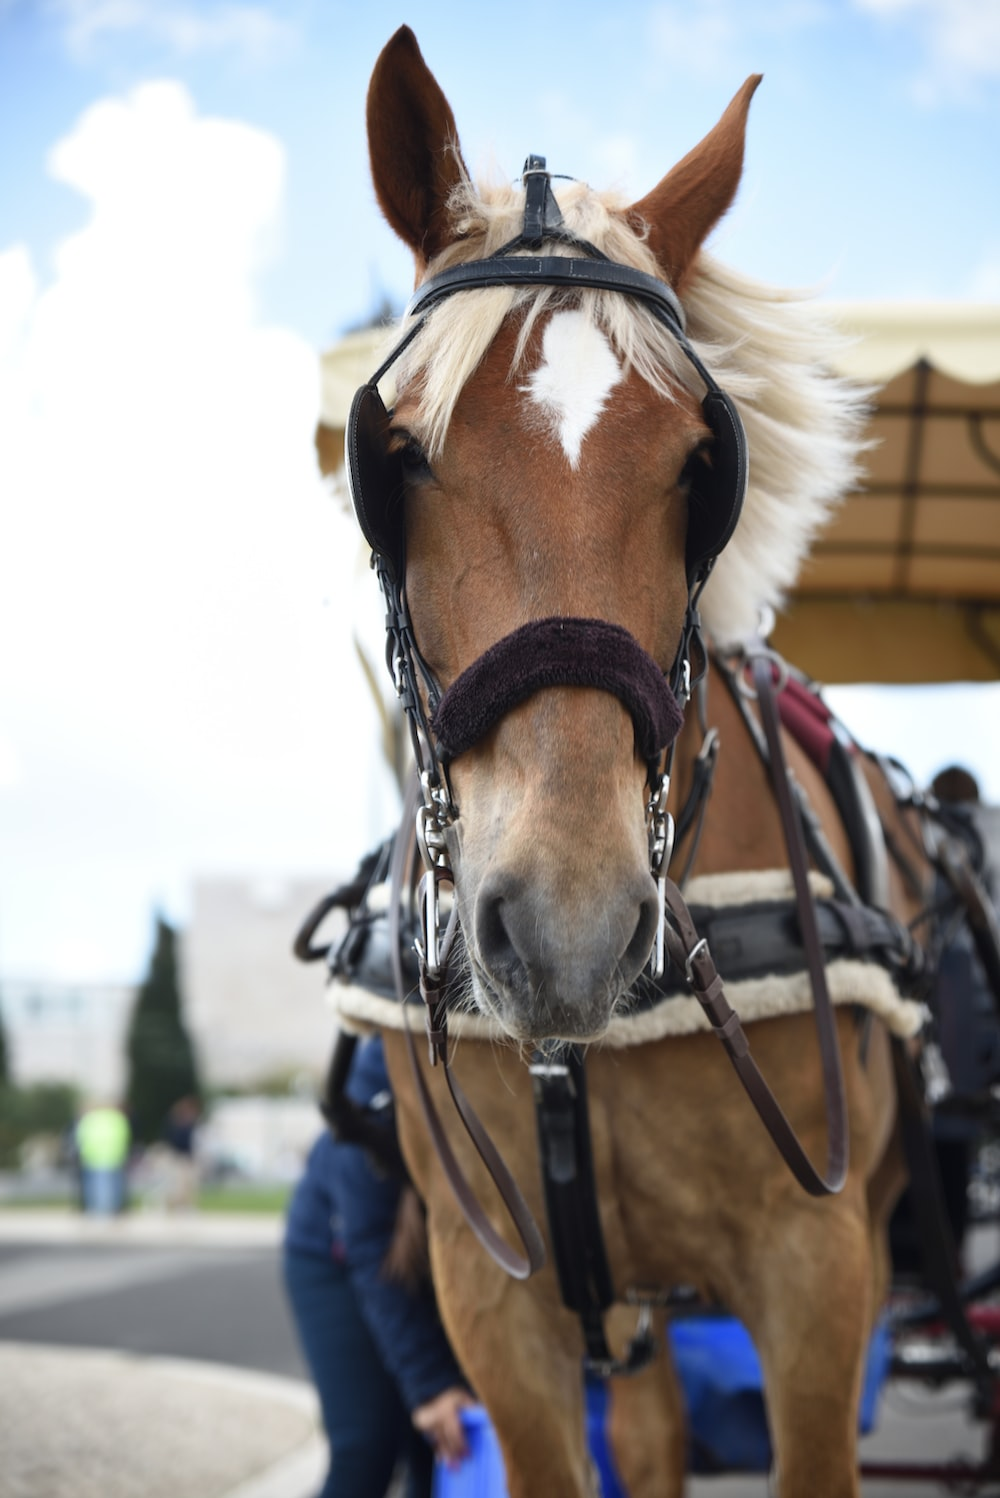 brown and white horse in close-up photography